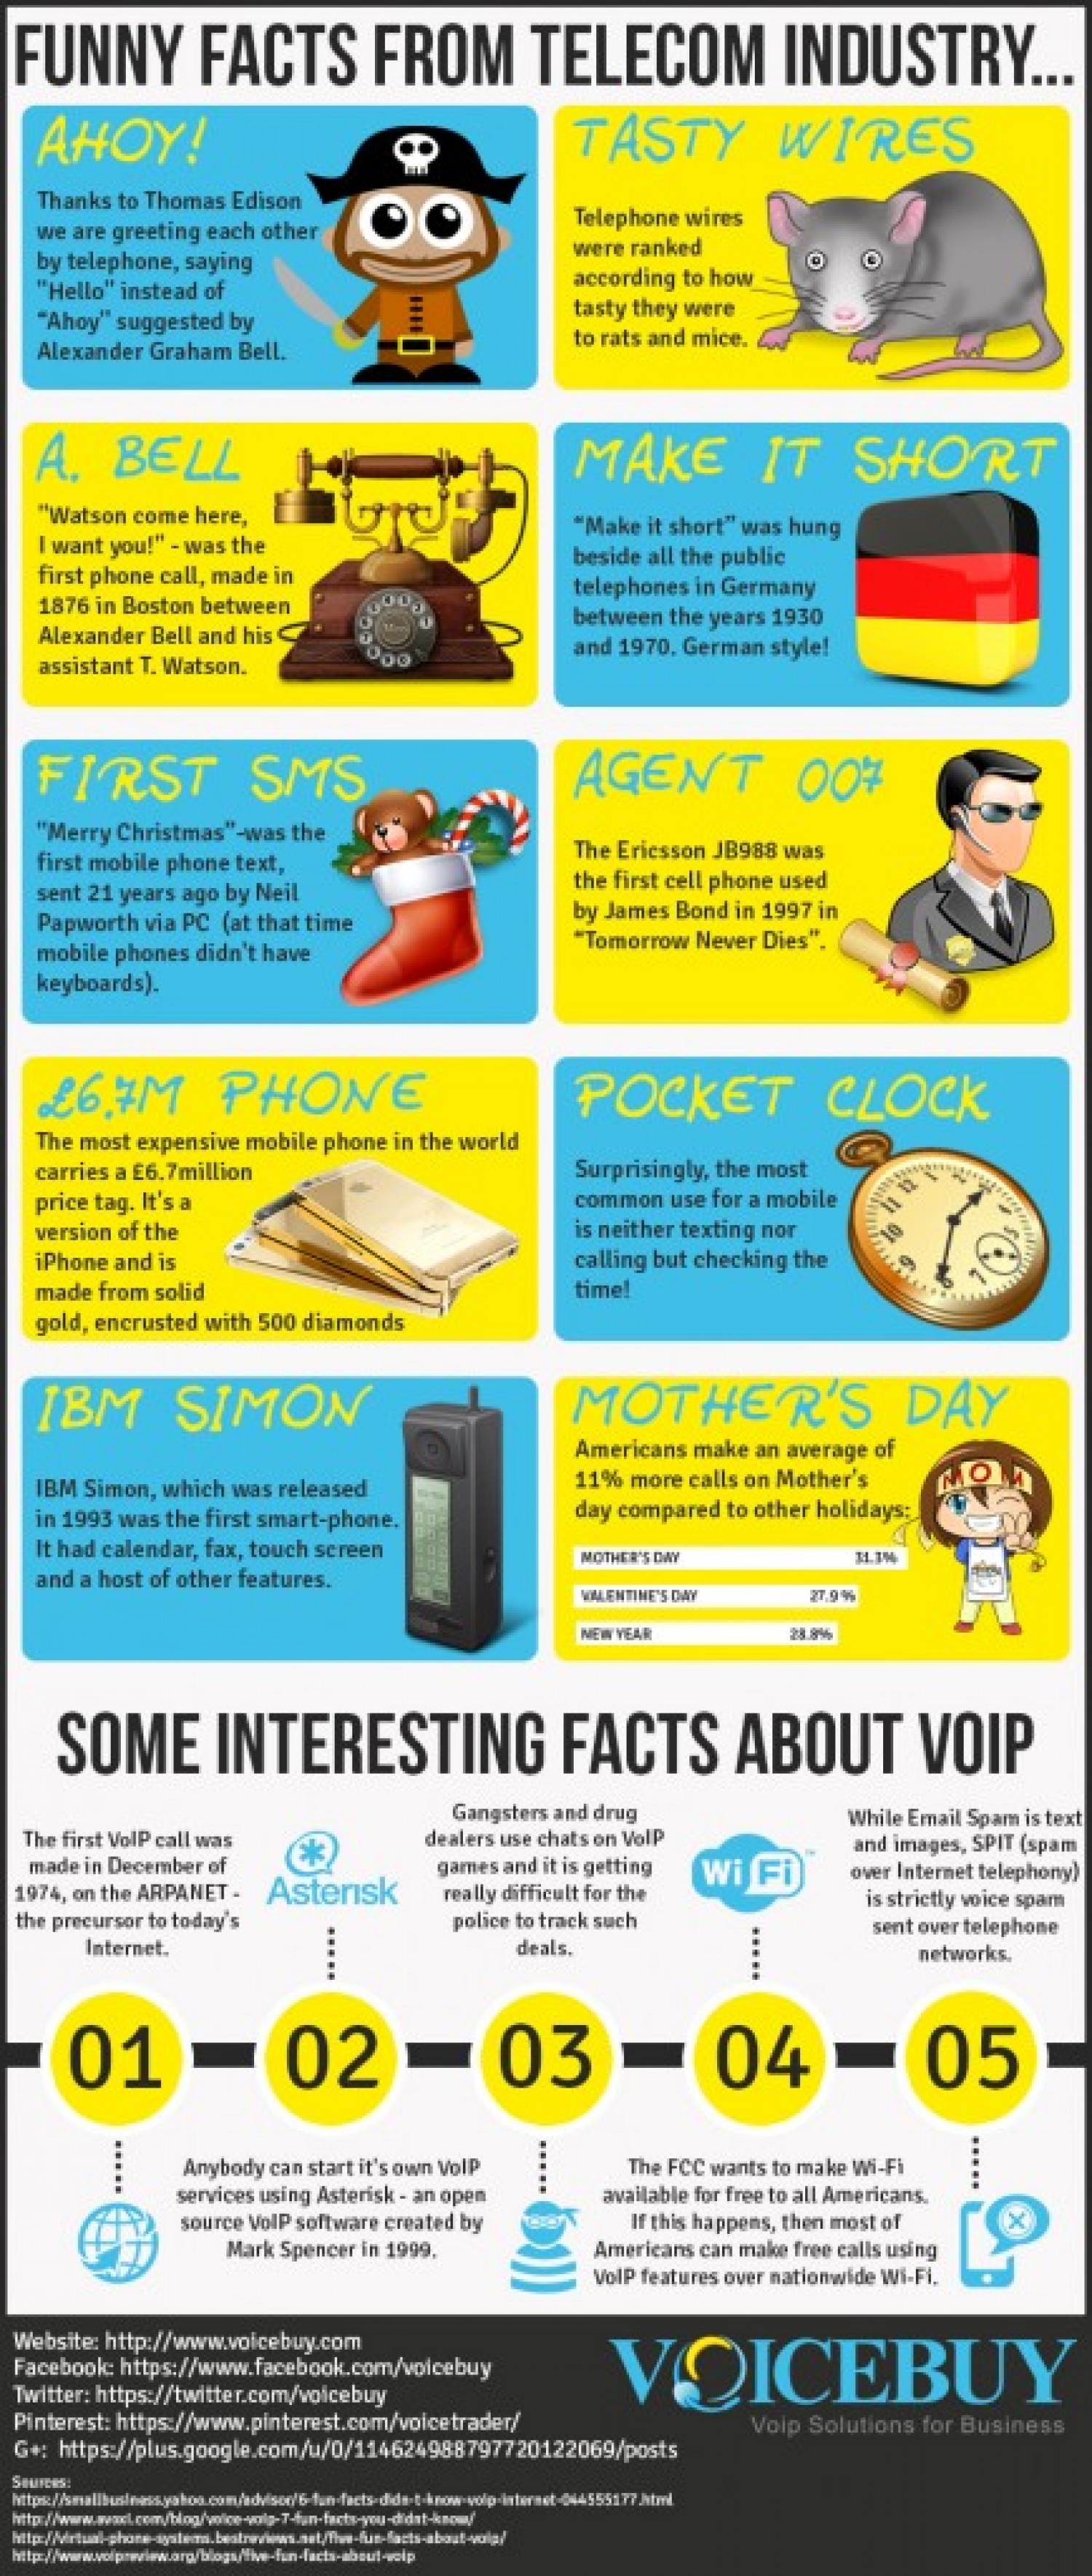 Funny Facts from Telecom Industry Infographic